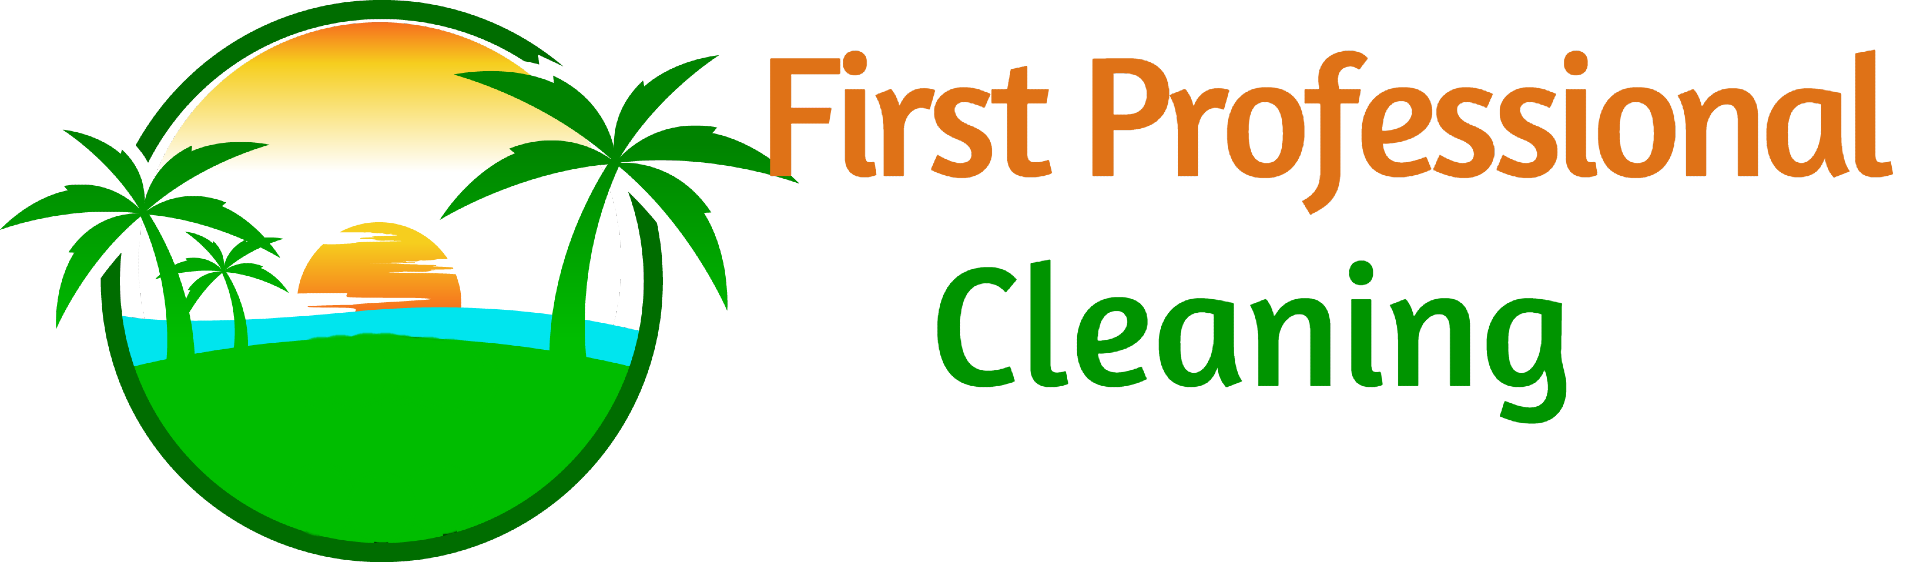 Read First Professional Cleaning Reviews